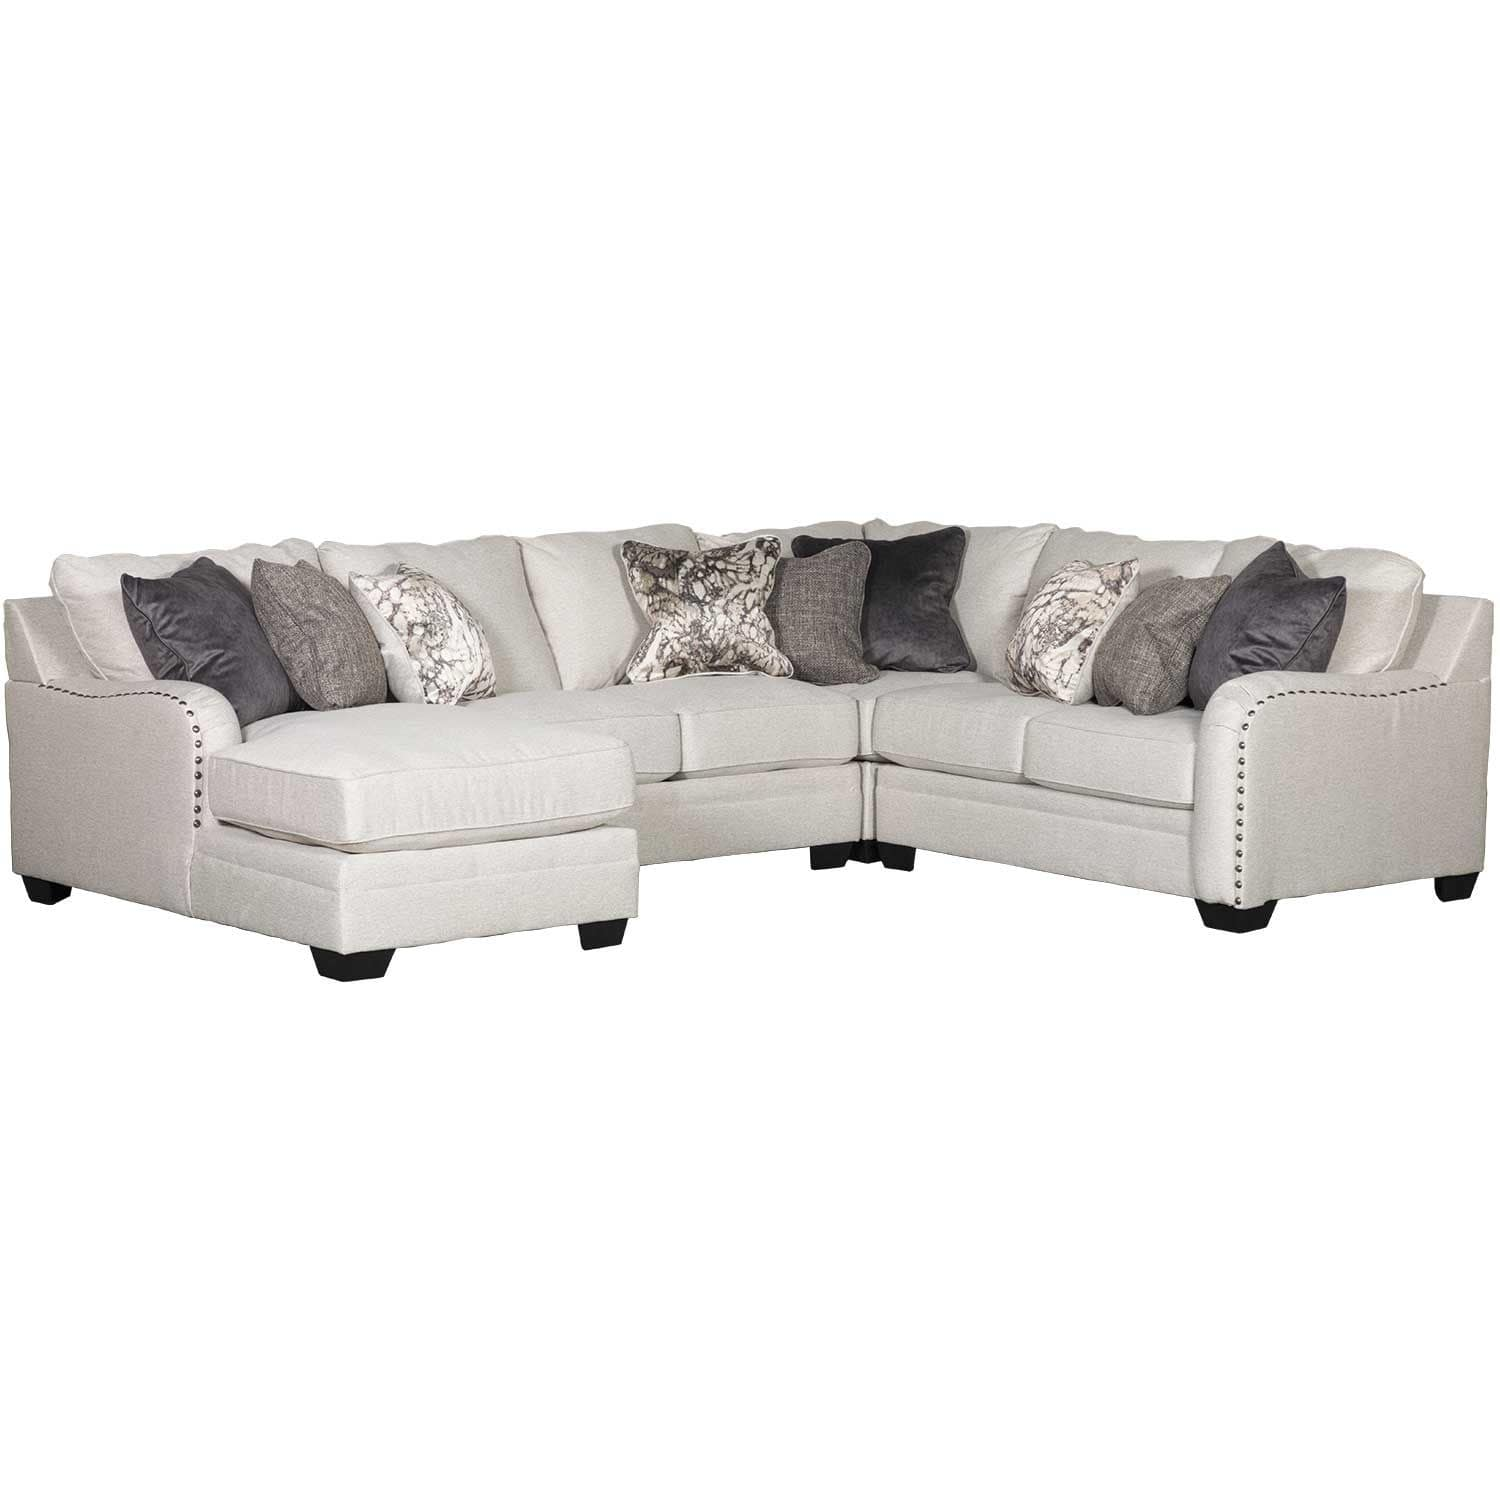 Dellara 4PC Sectional with LAF Chaise